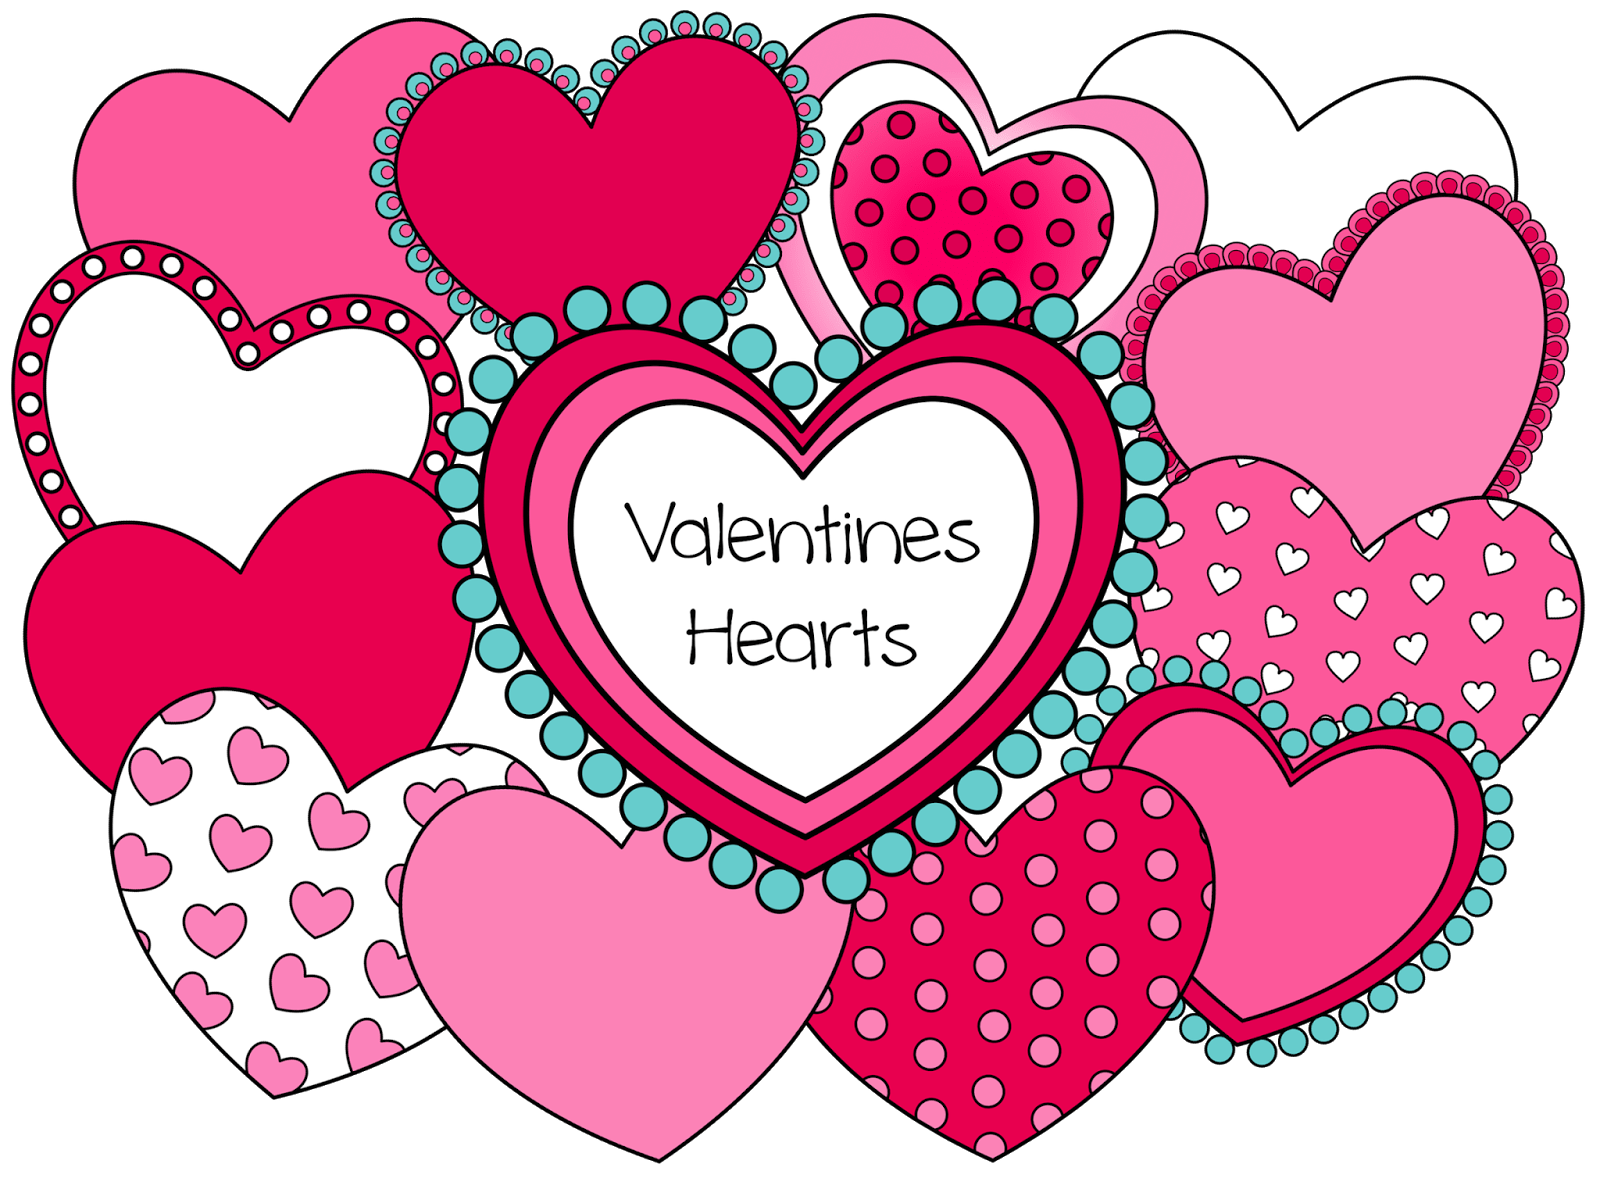 Valentine Hearts 12 Hearts You Can Resize And Layer In